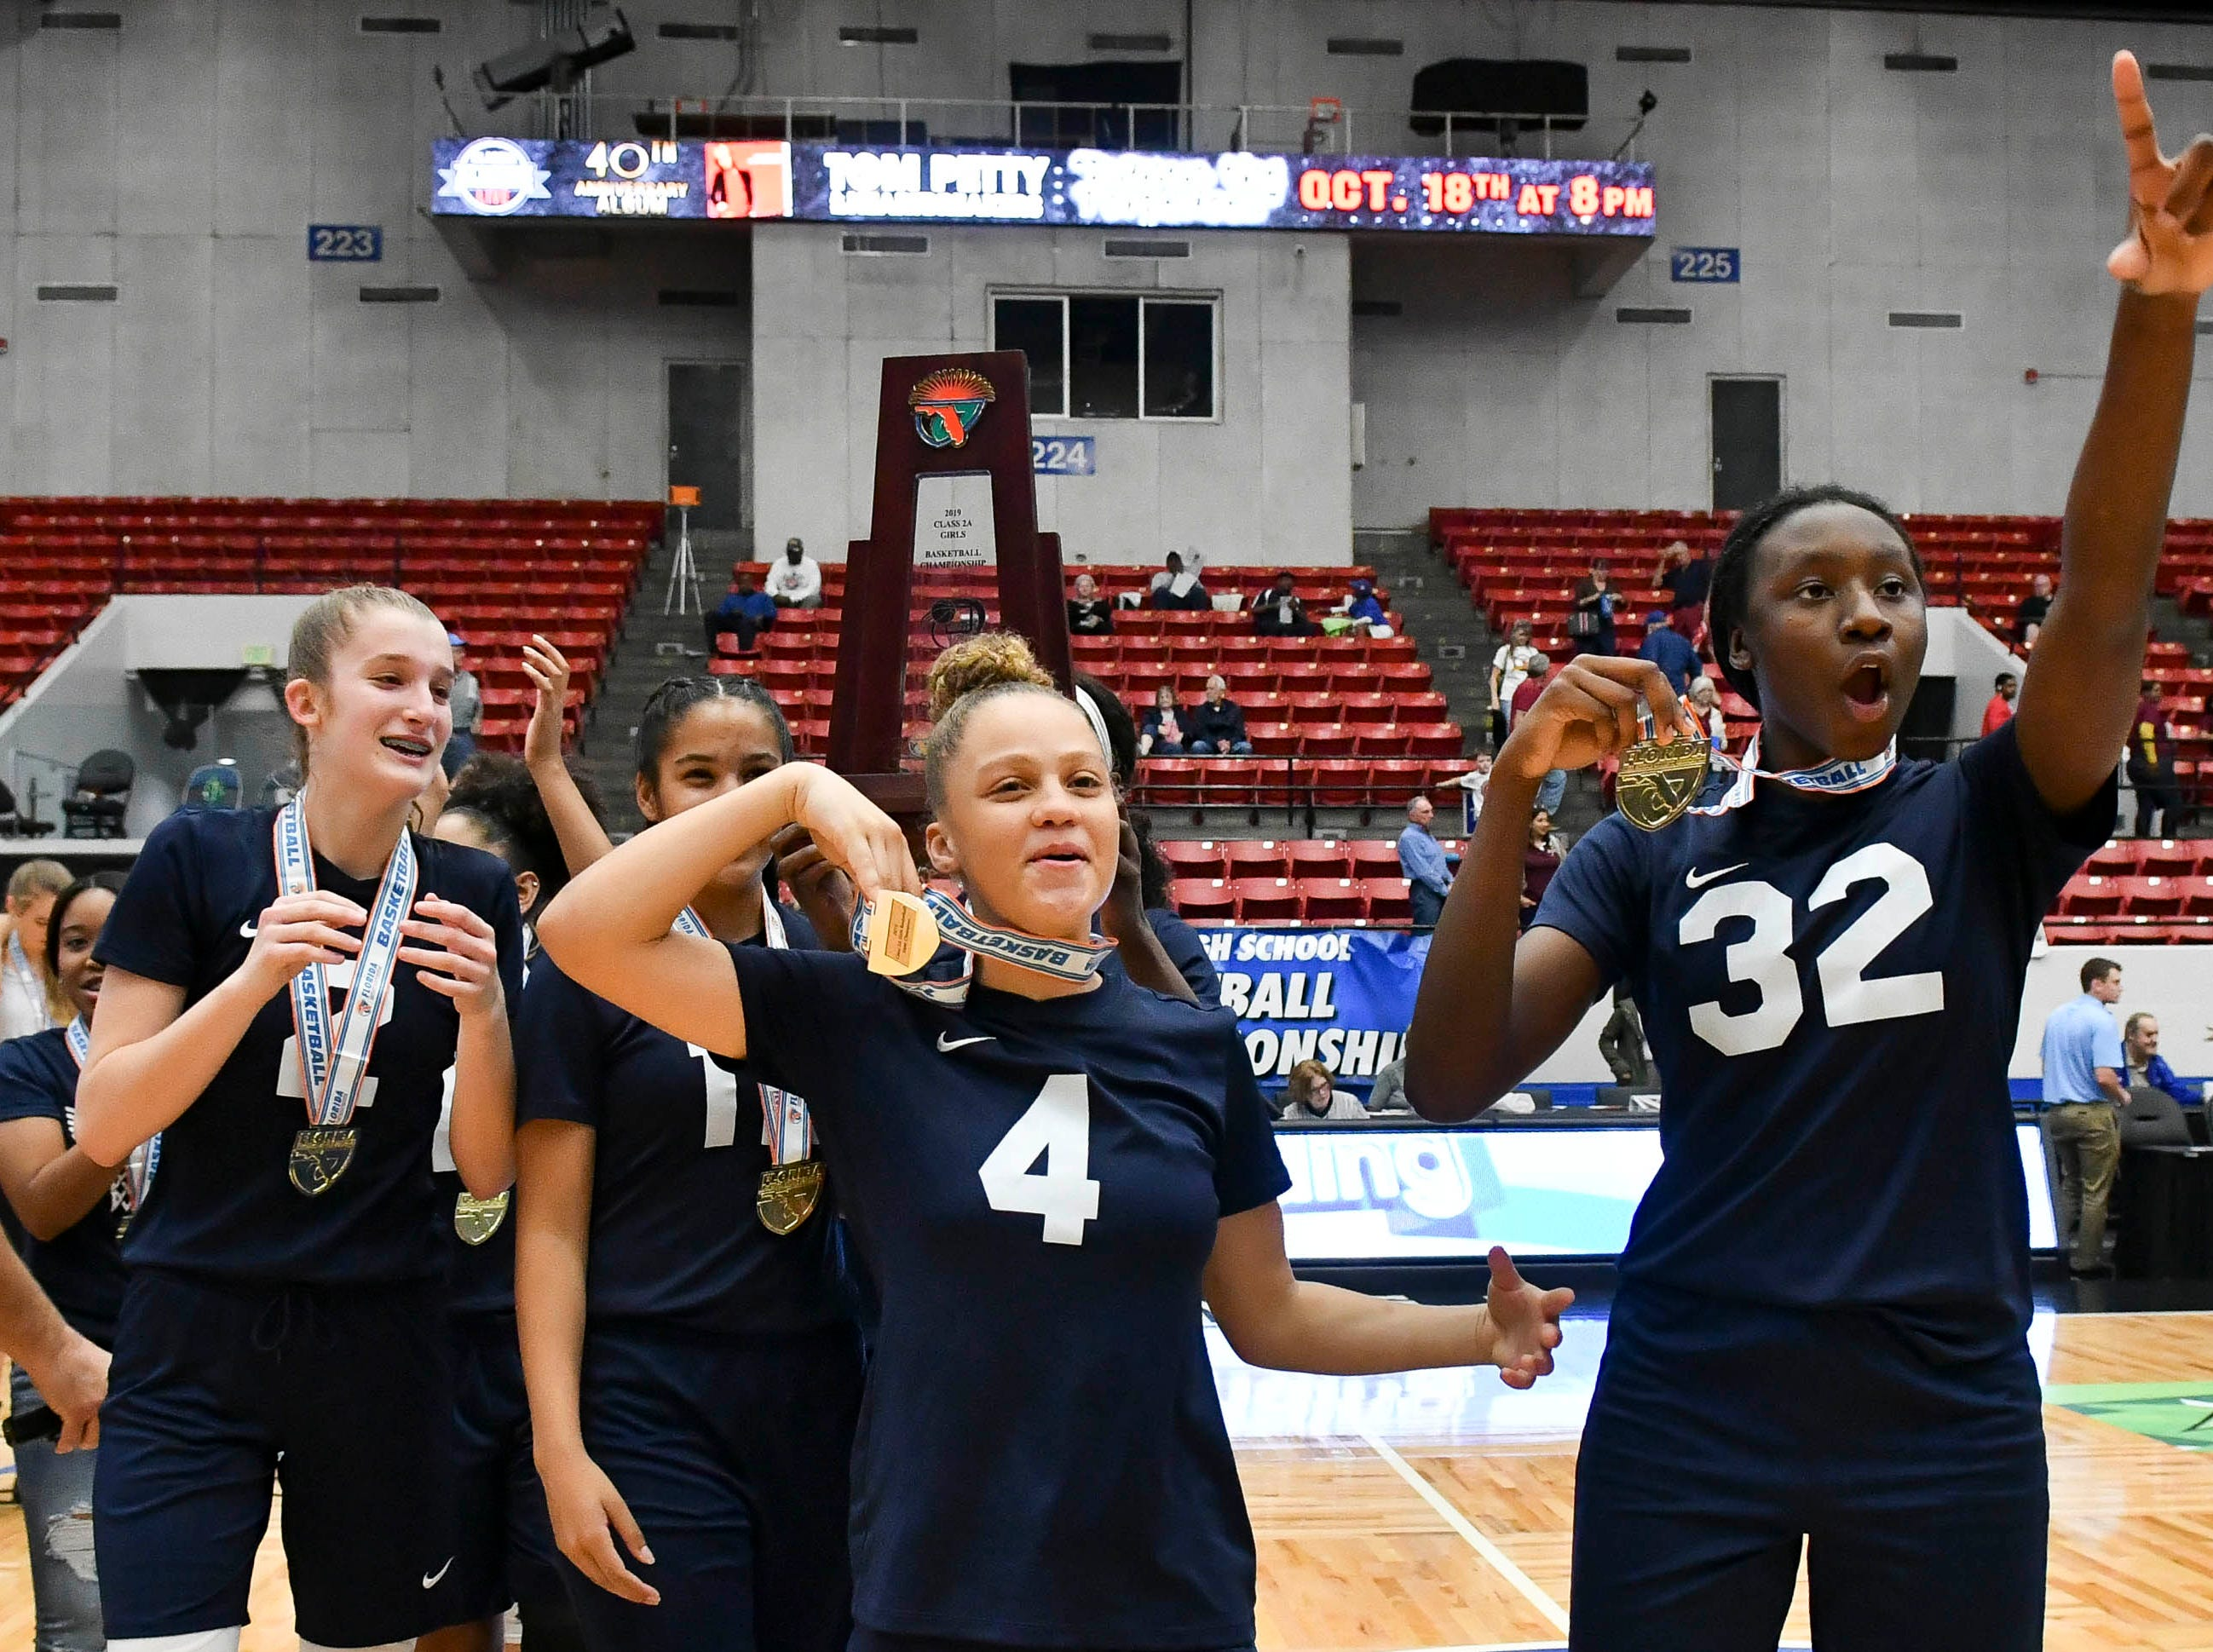 Florida Prep players celebrate their 67-35 victory over Bayshore Christian in Tuesday's Class 2A state championship game.